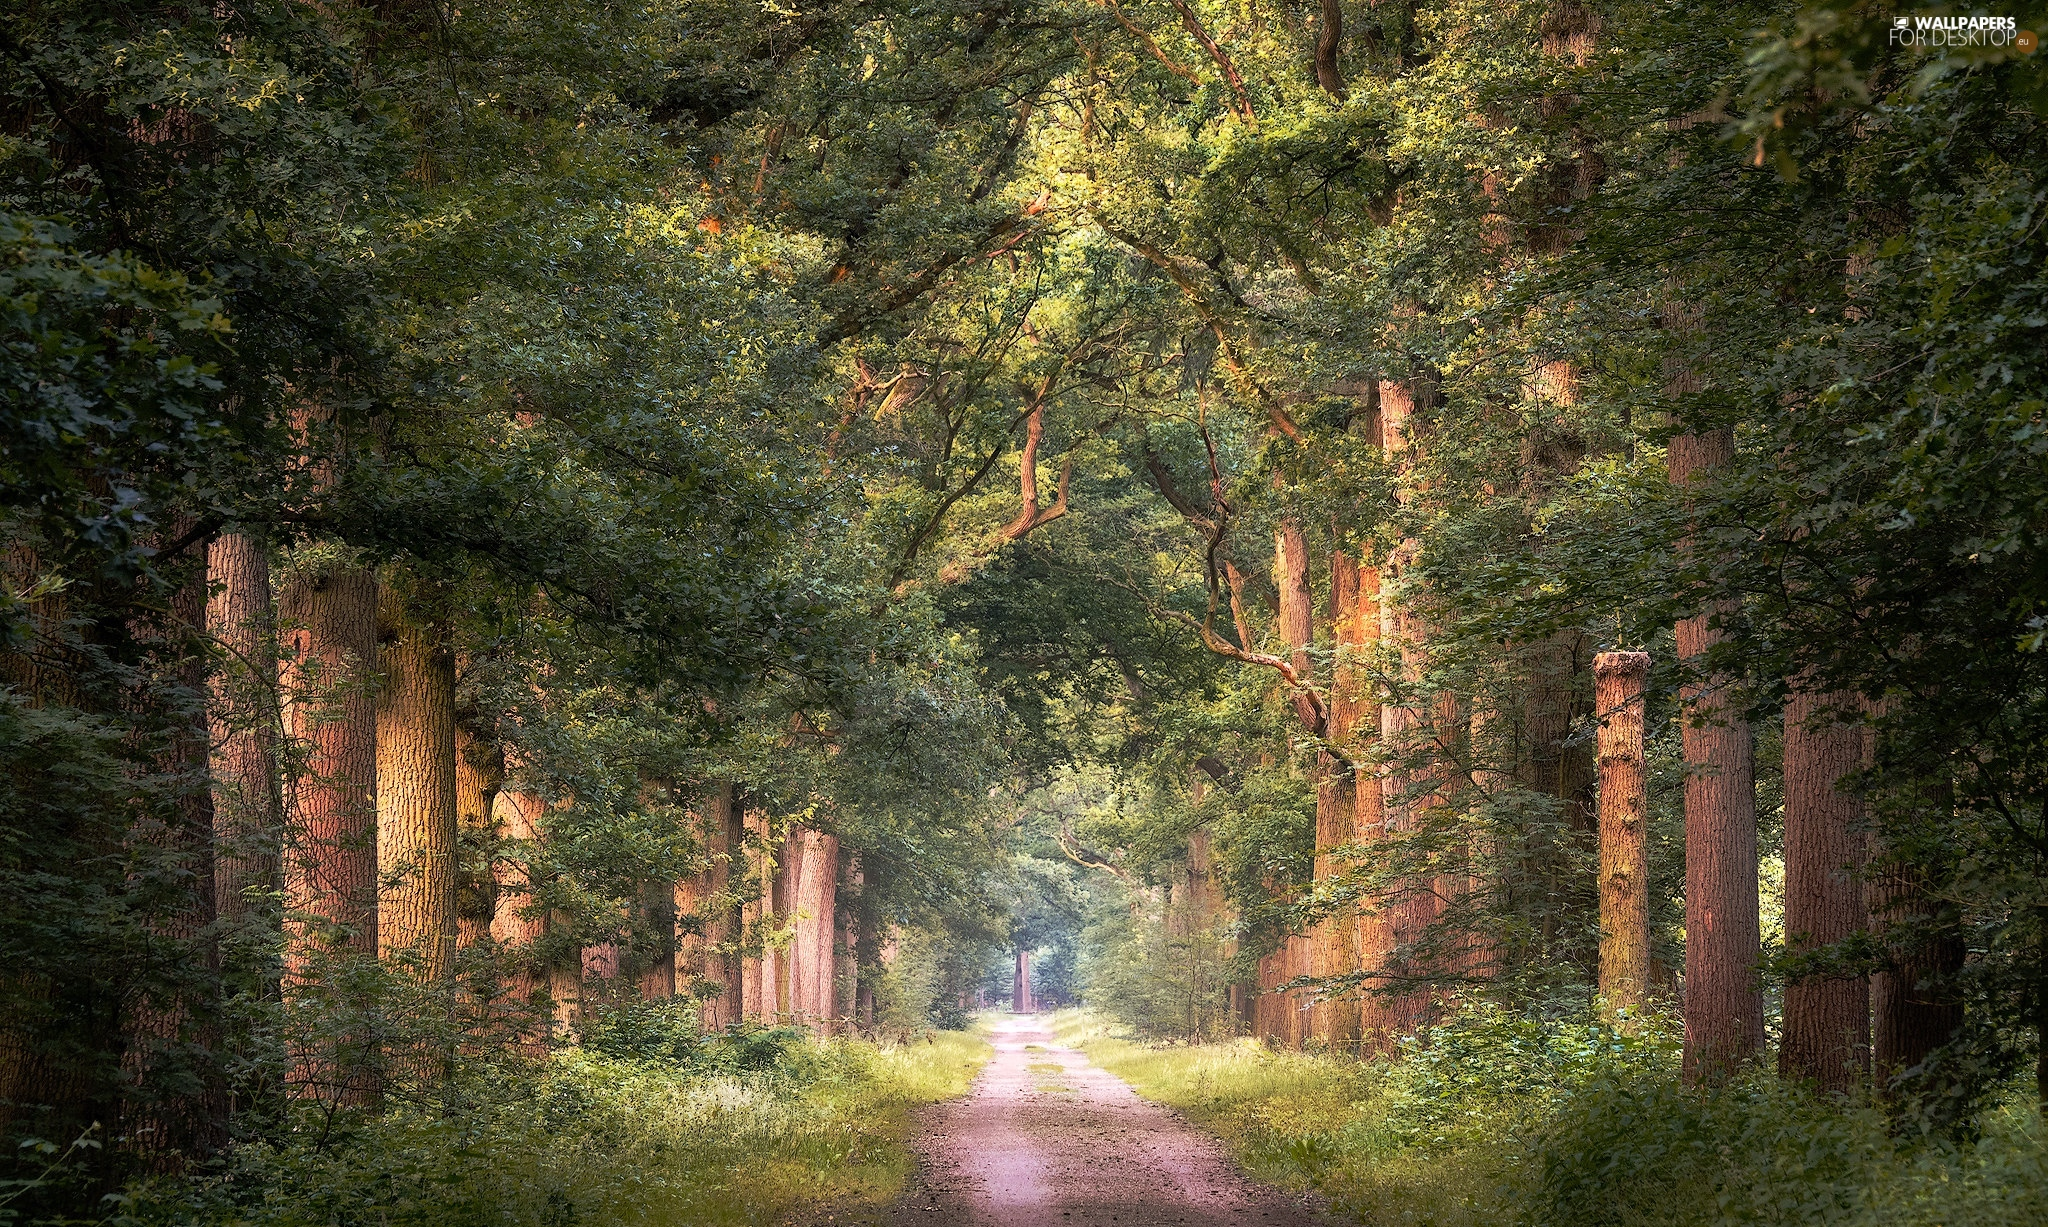 viewes, Hardwood, Way, trees, forest